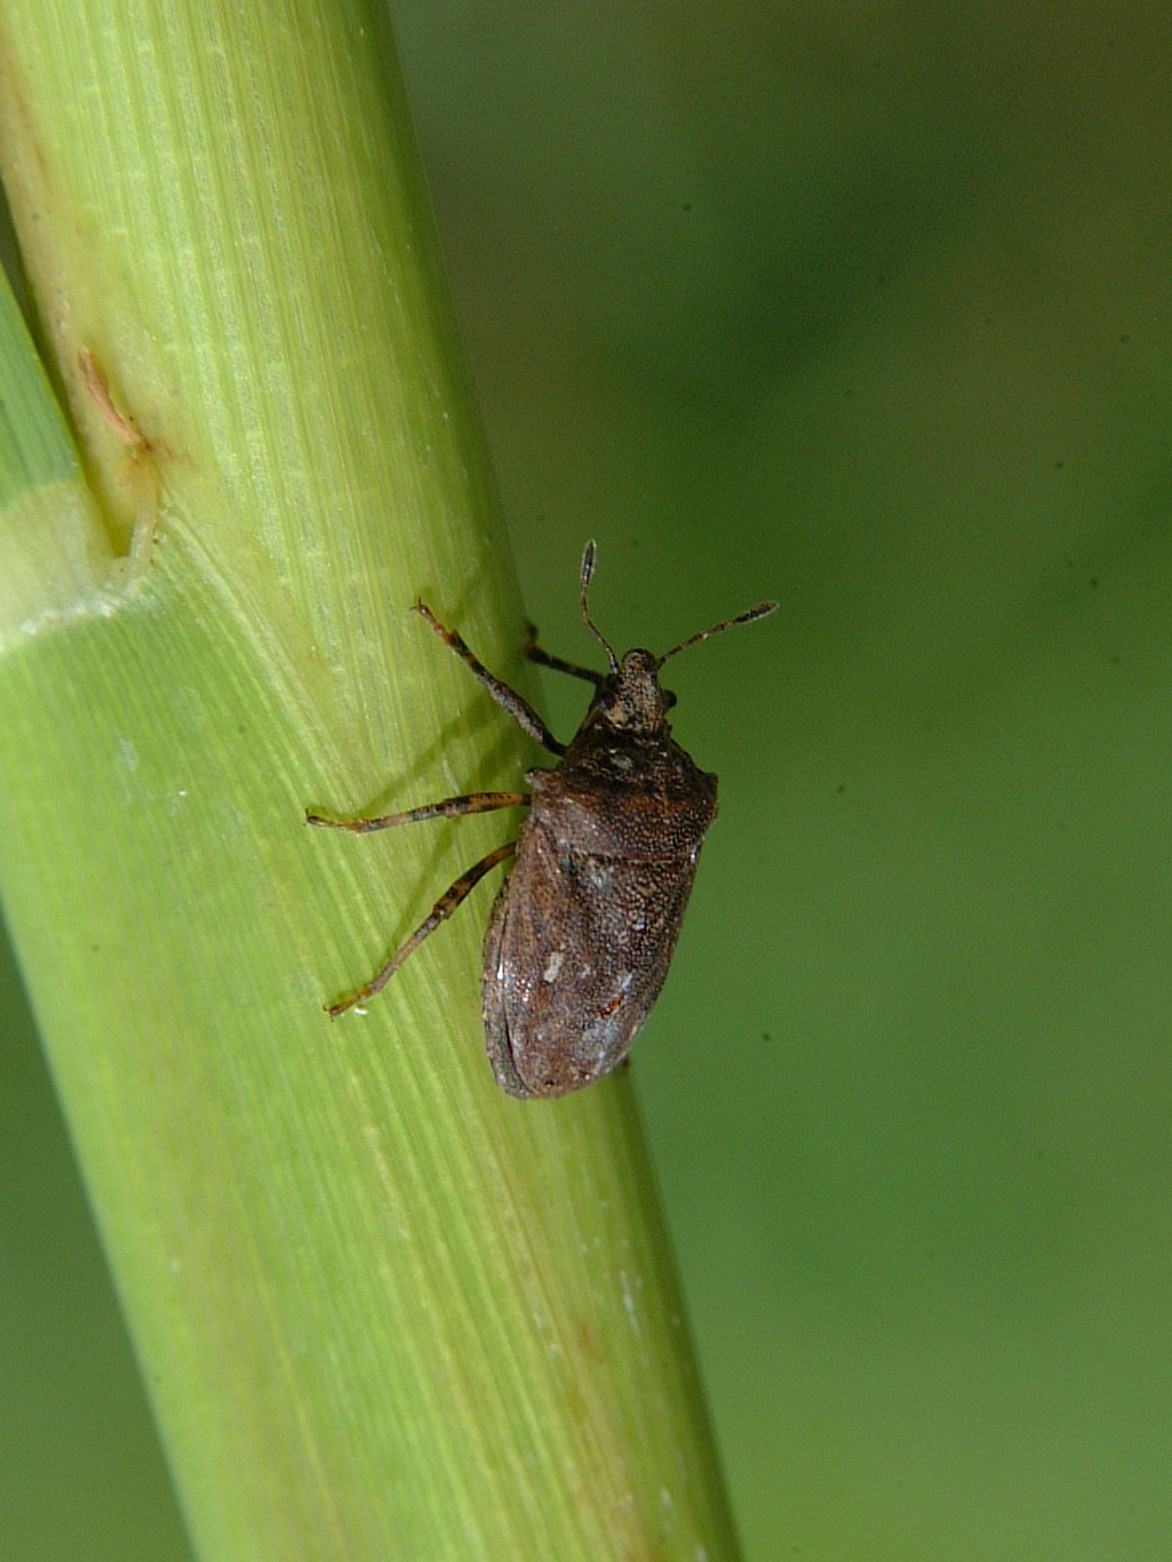 Amaurochrous dubius adult – formerly called black rice bug or turtle bug.